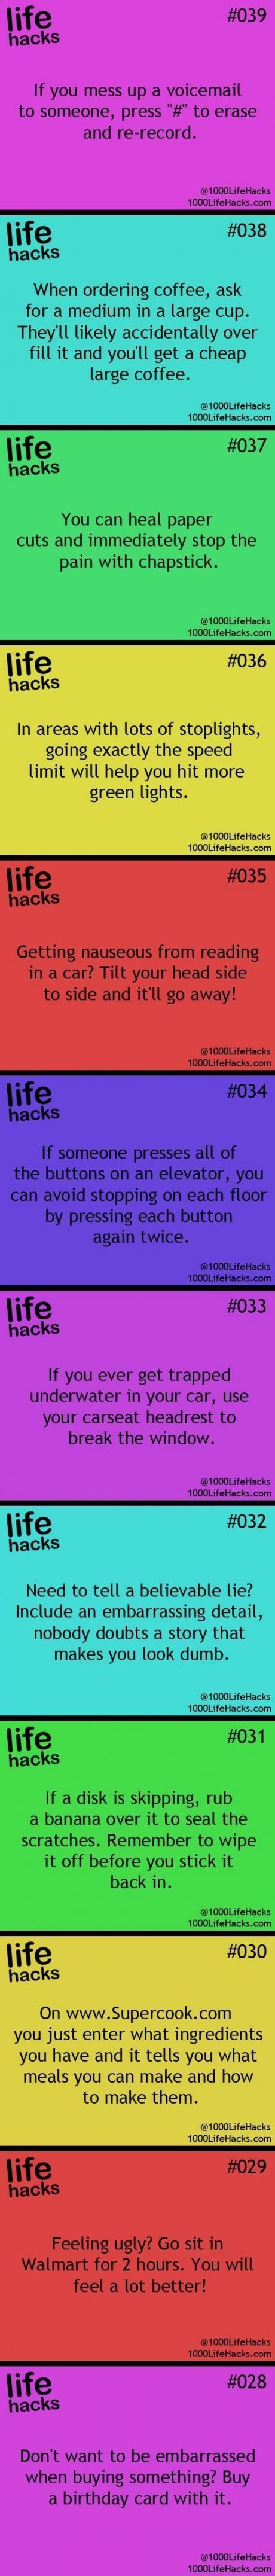 Random Life Facts. Some of these are actually kinda interesting:)